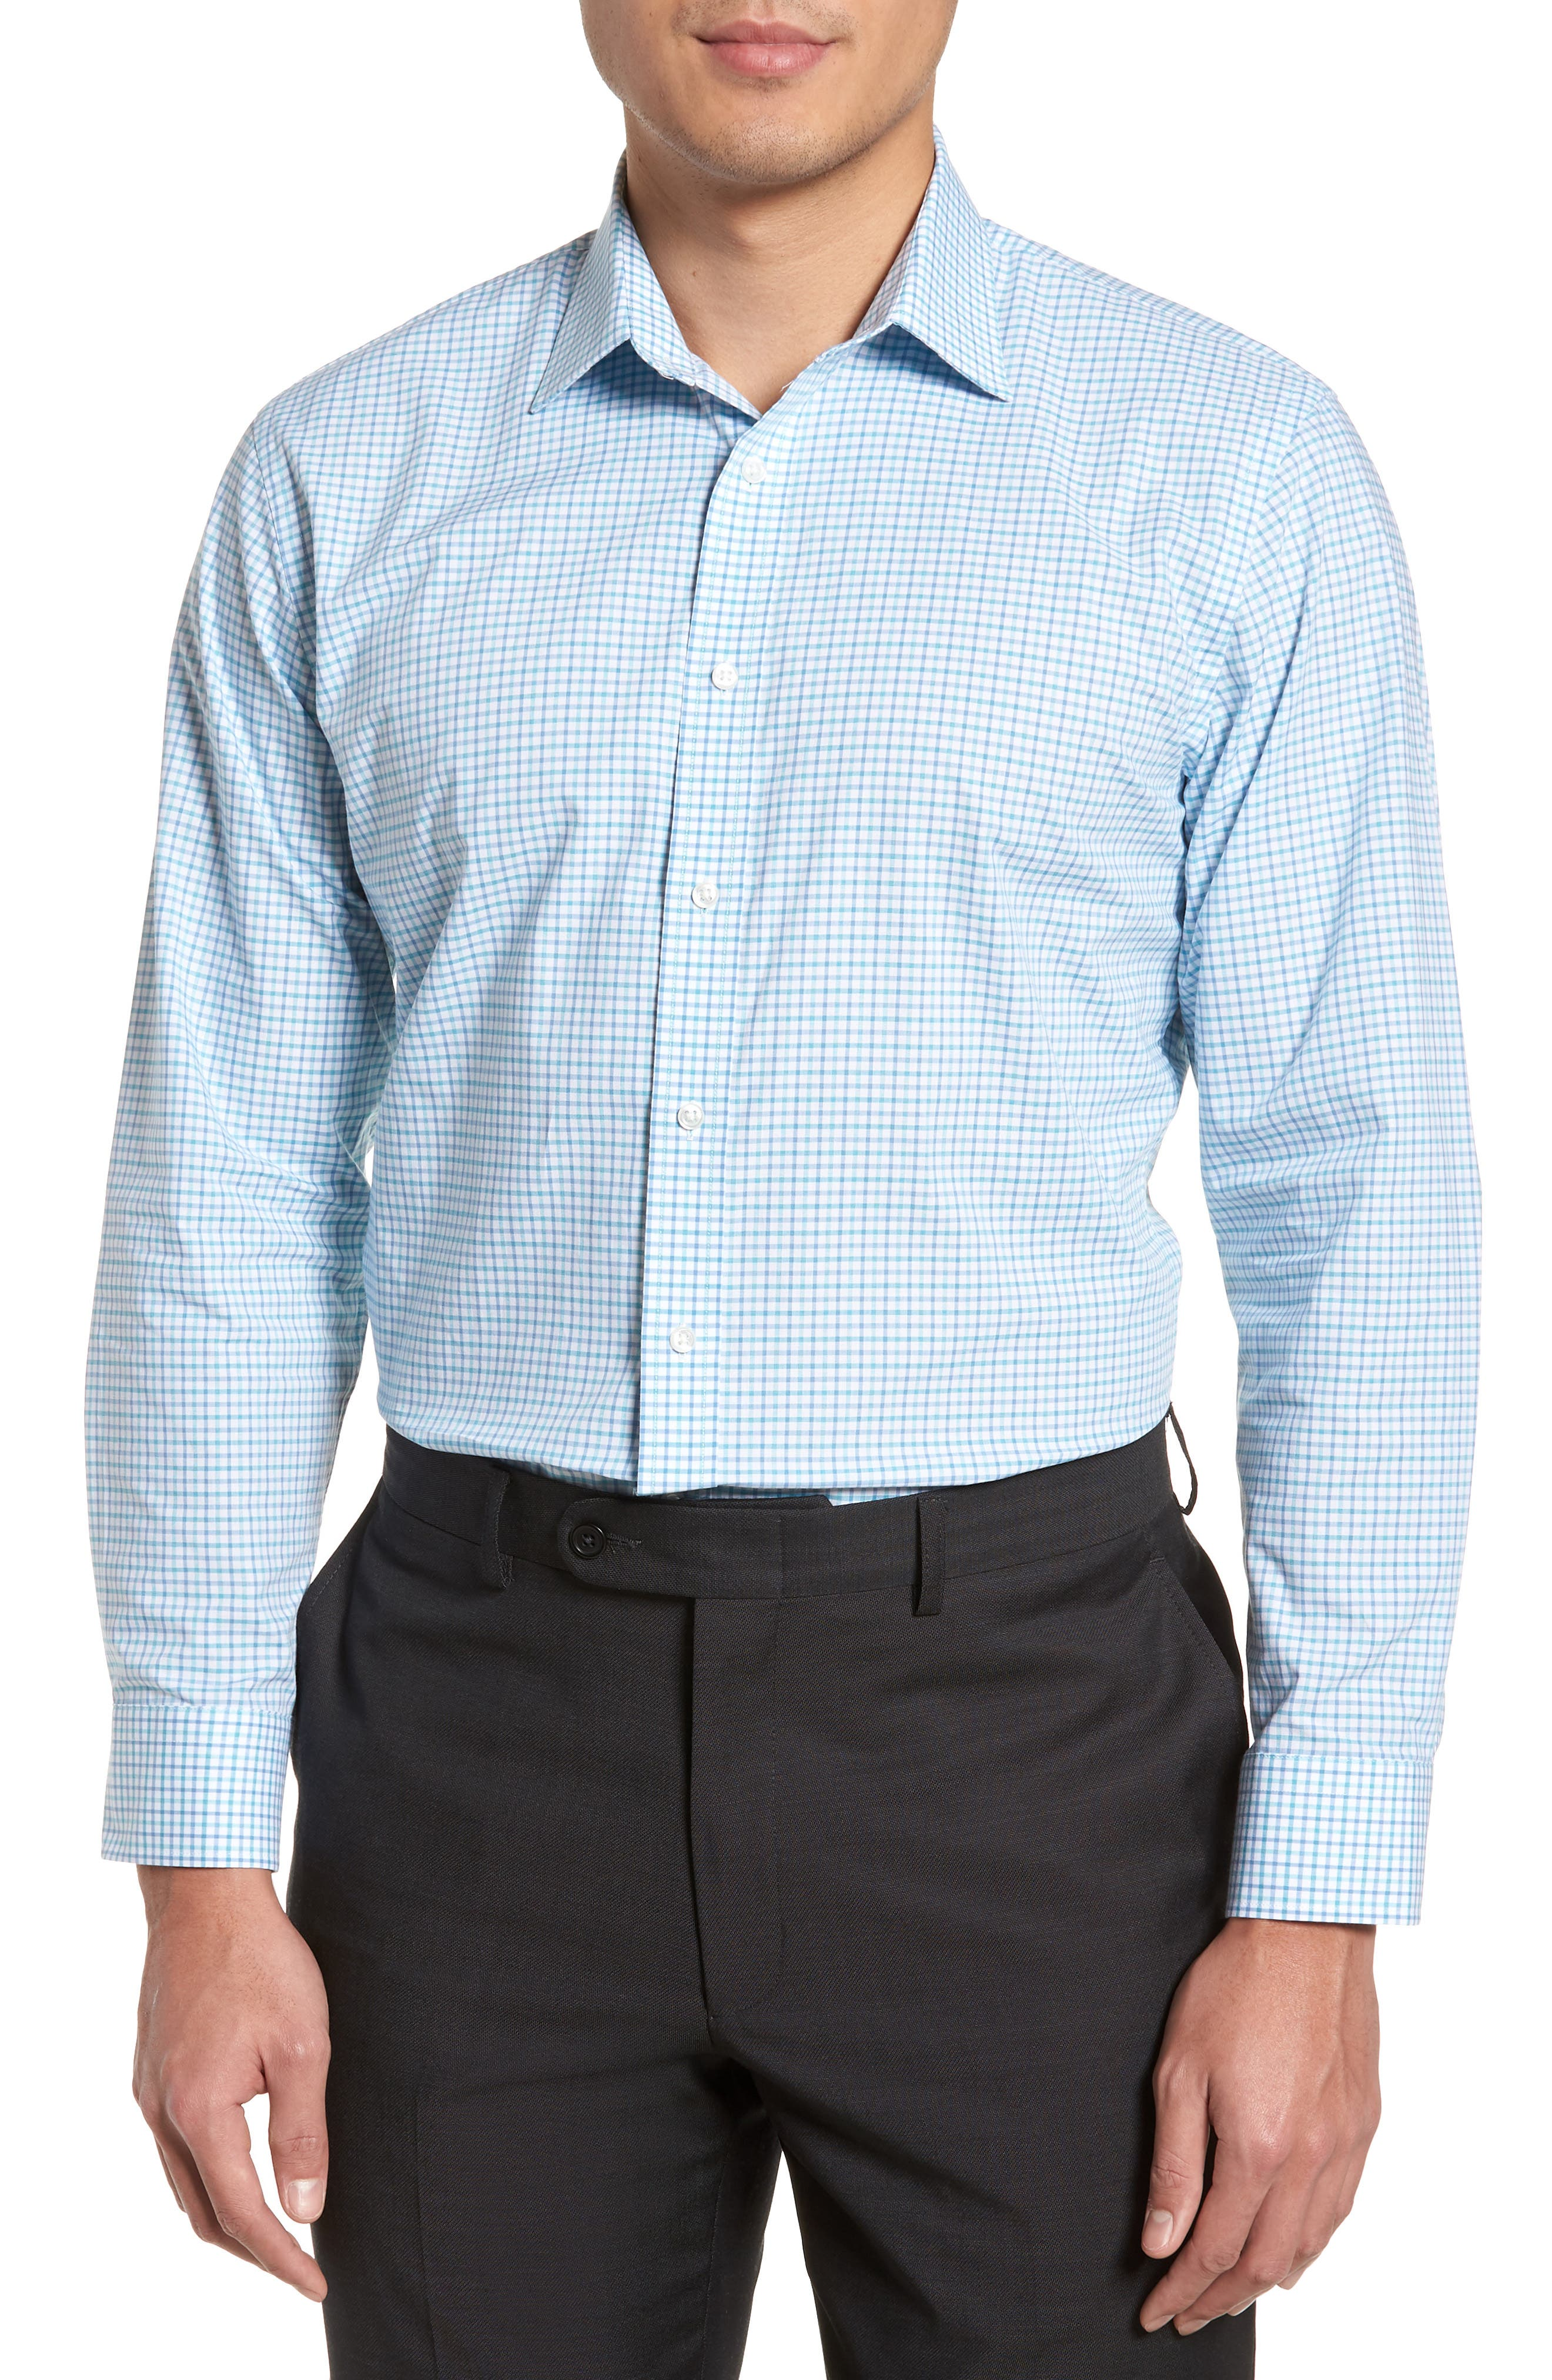 Alternate Image 1 Selected - Nordstrom Men's Shop Trim Fit Check Dress Shirt